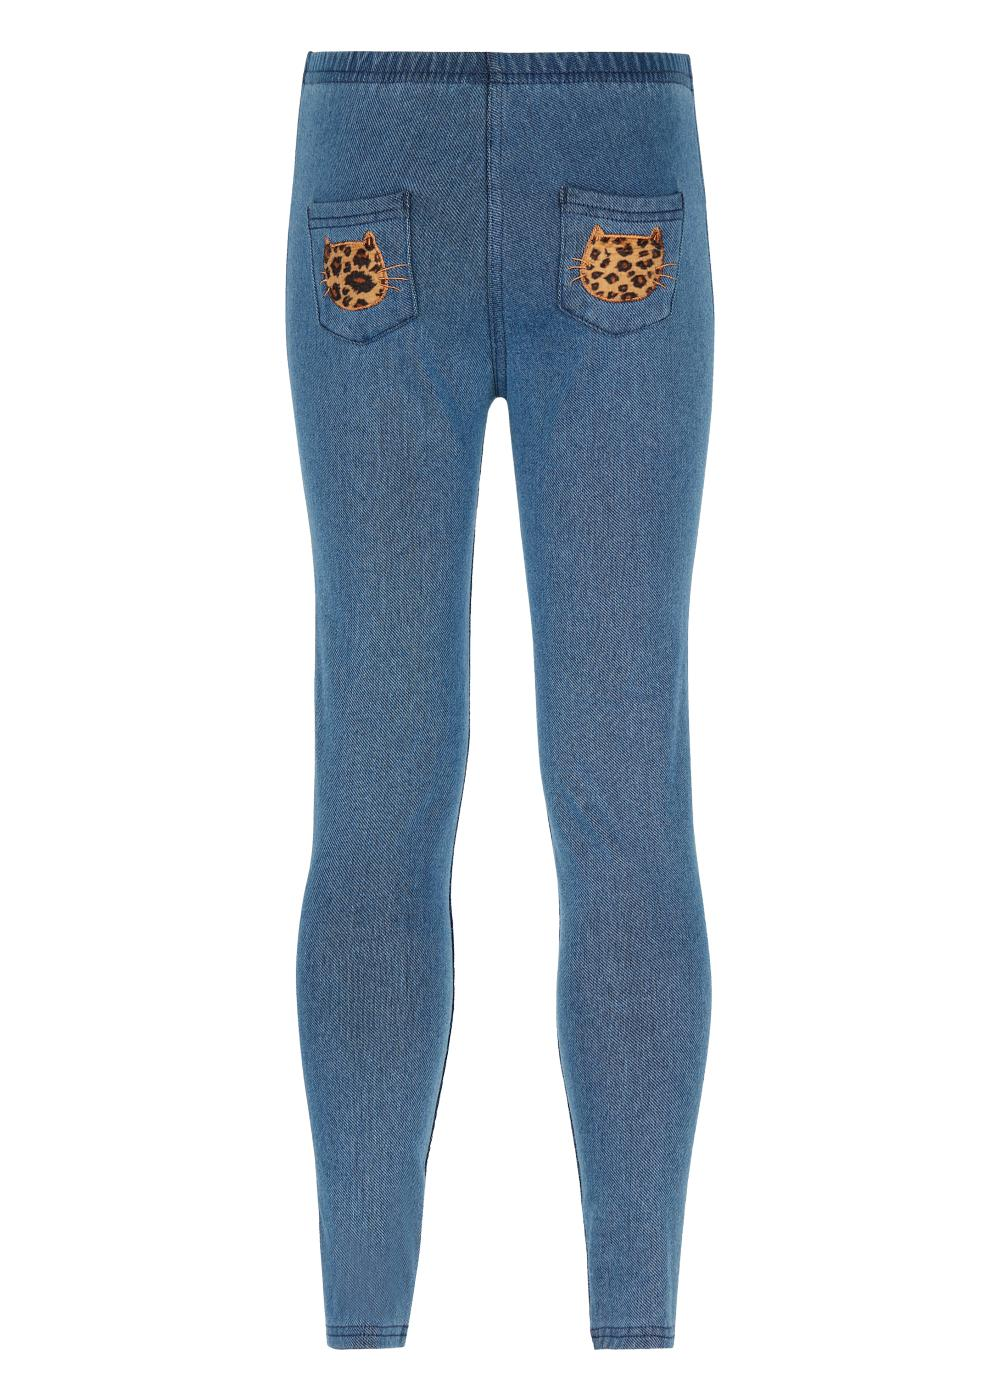 Leggings in Denim Termici da Bambina